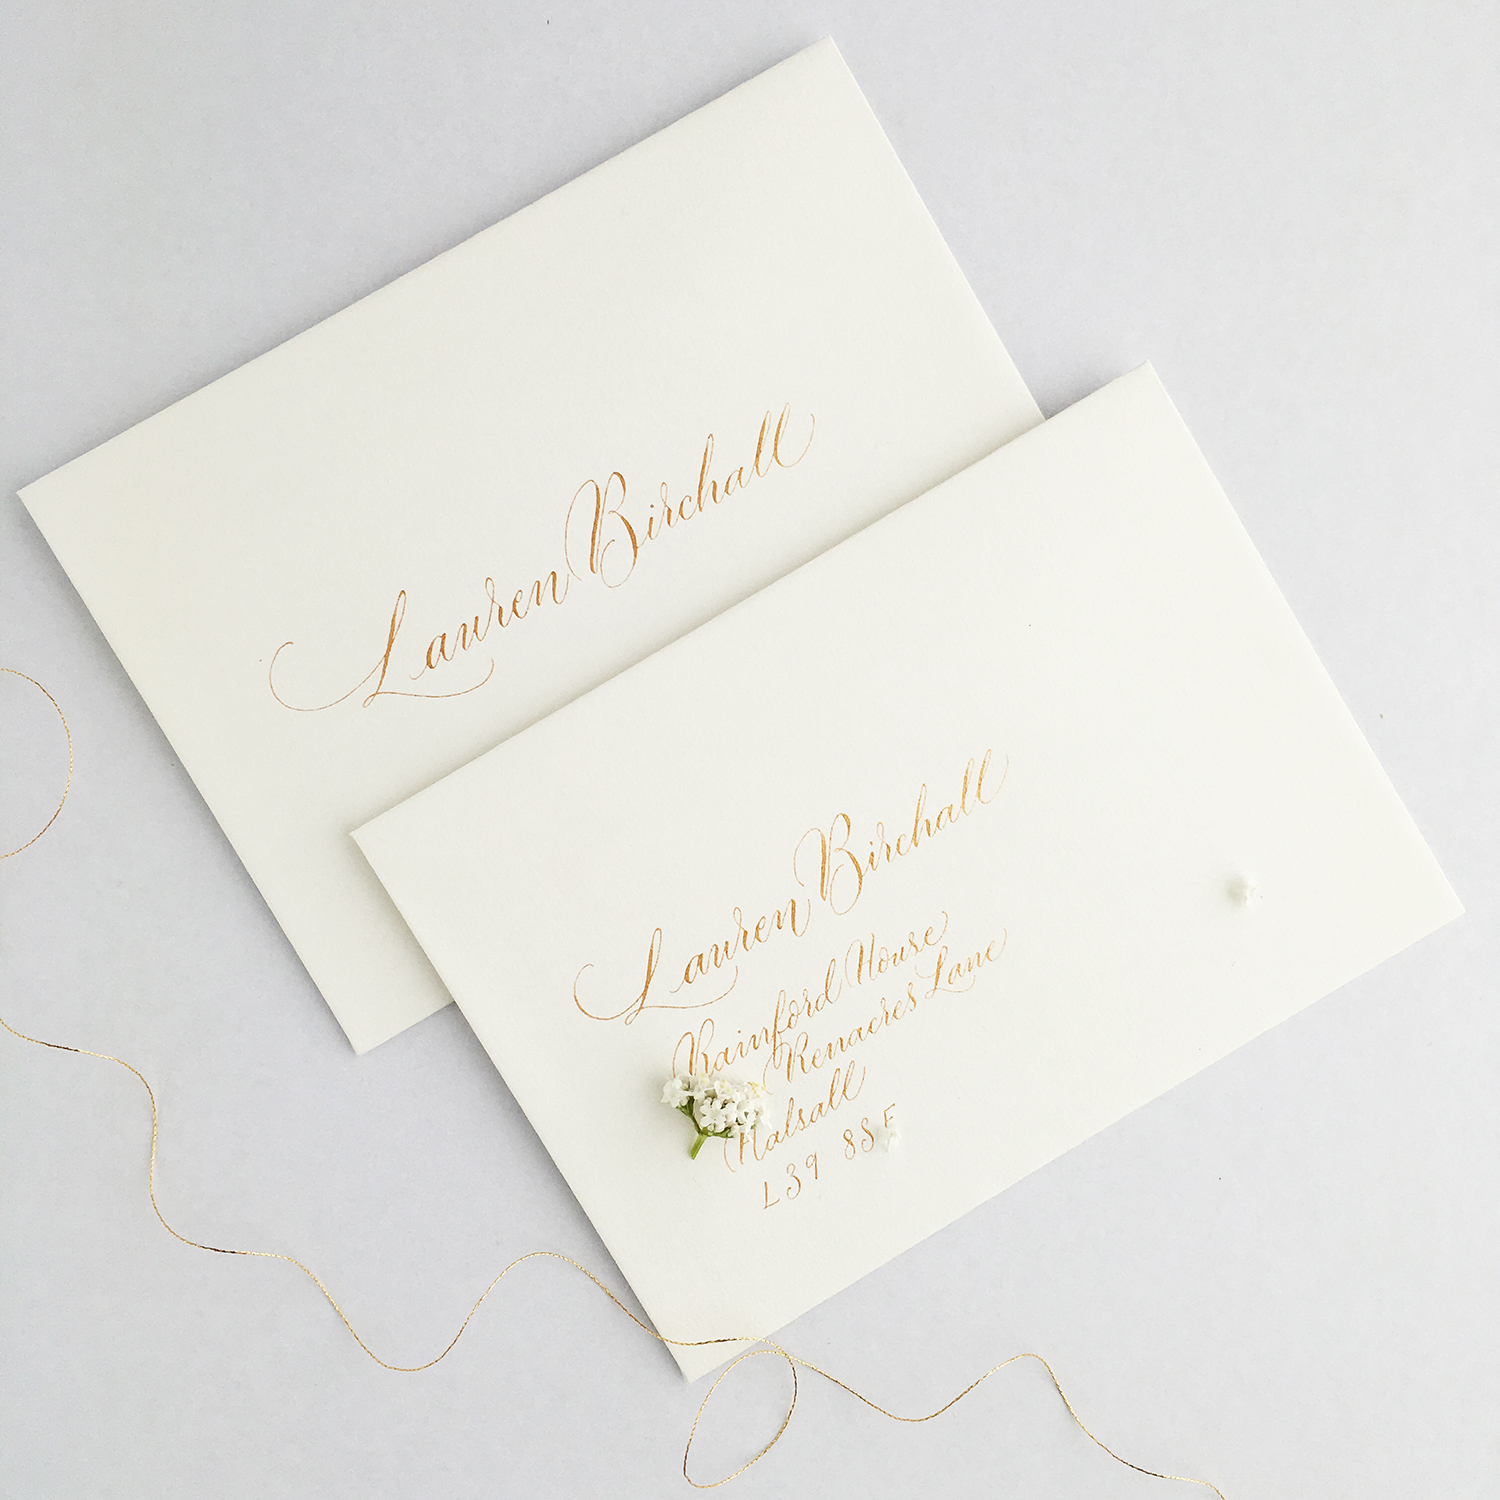 Luxe gold ink wedding calligraphy envelope samples